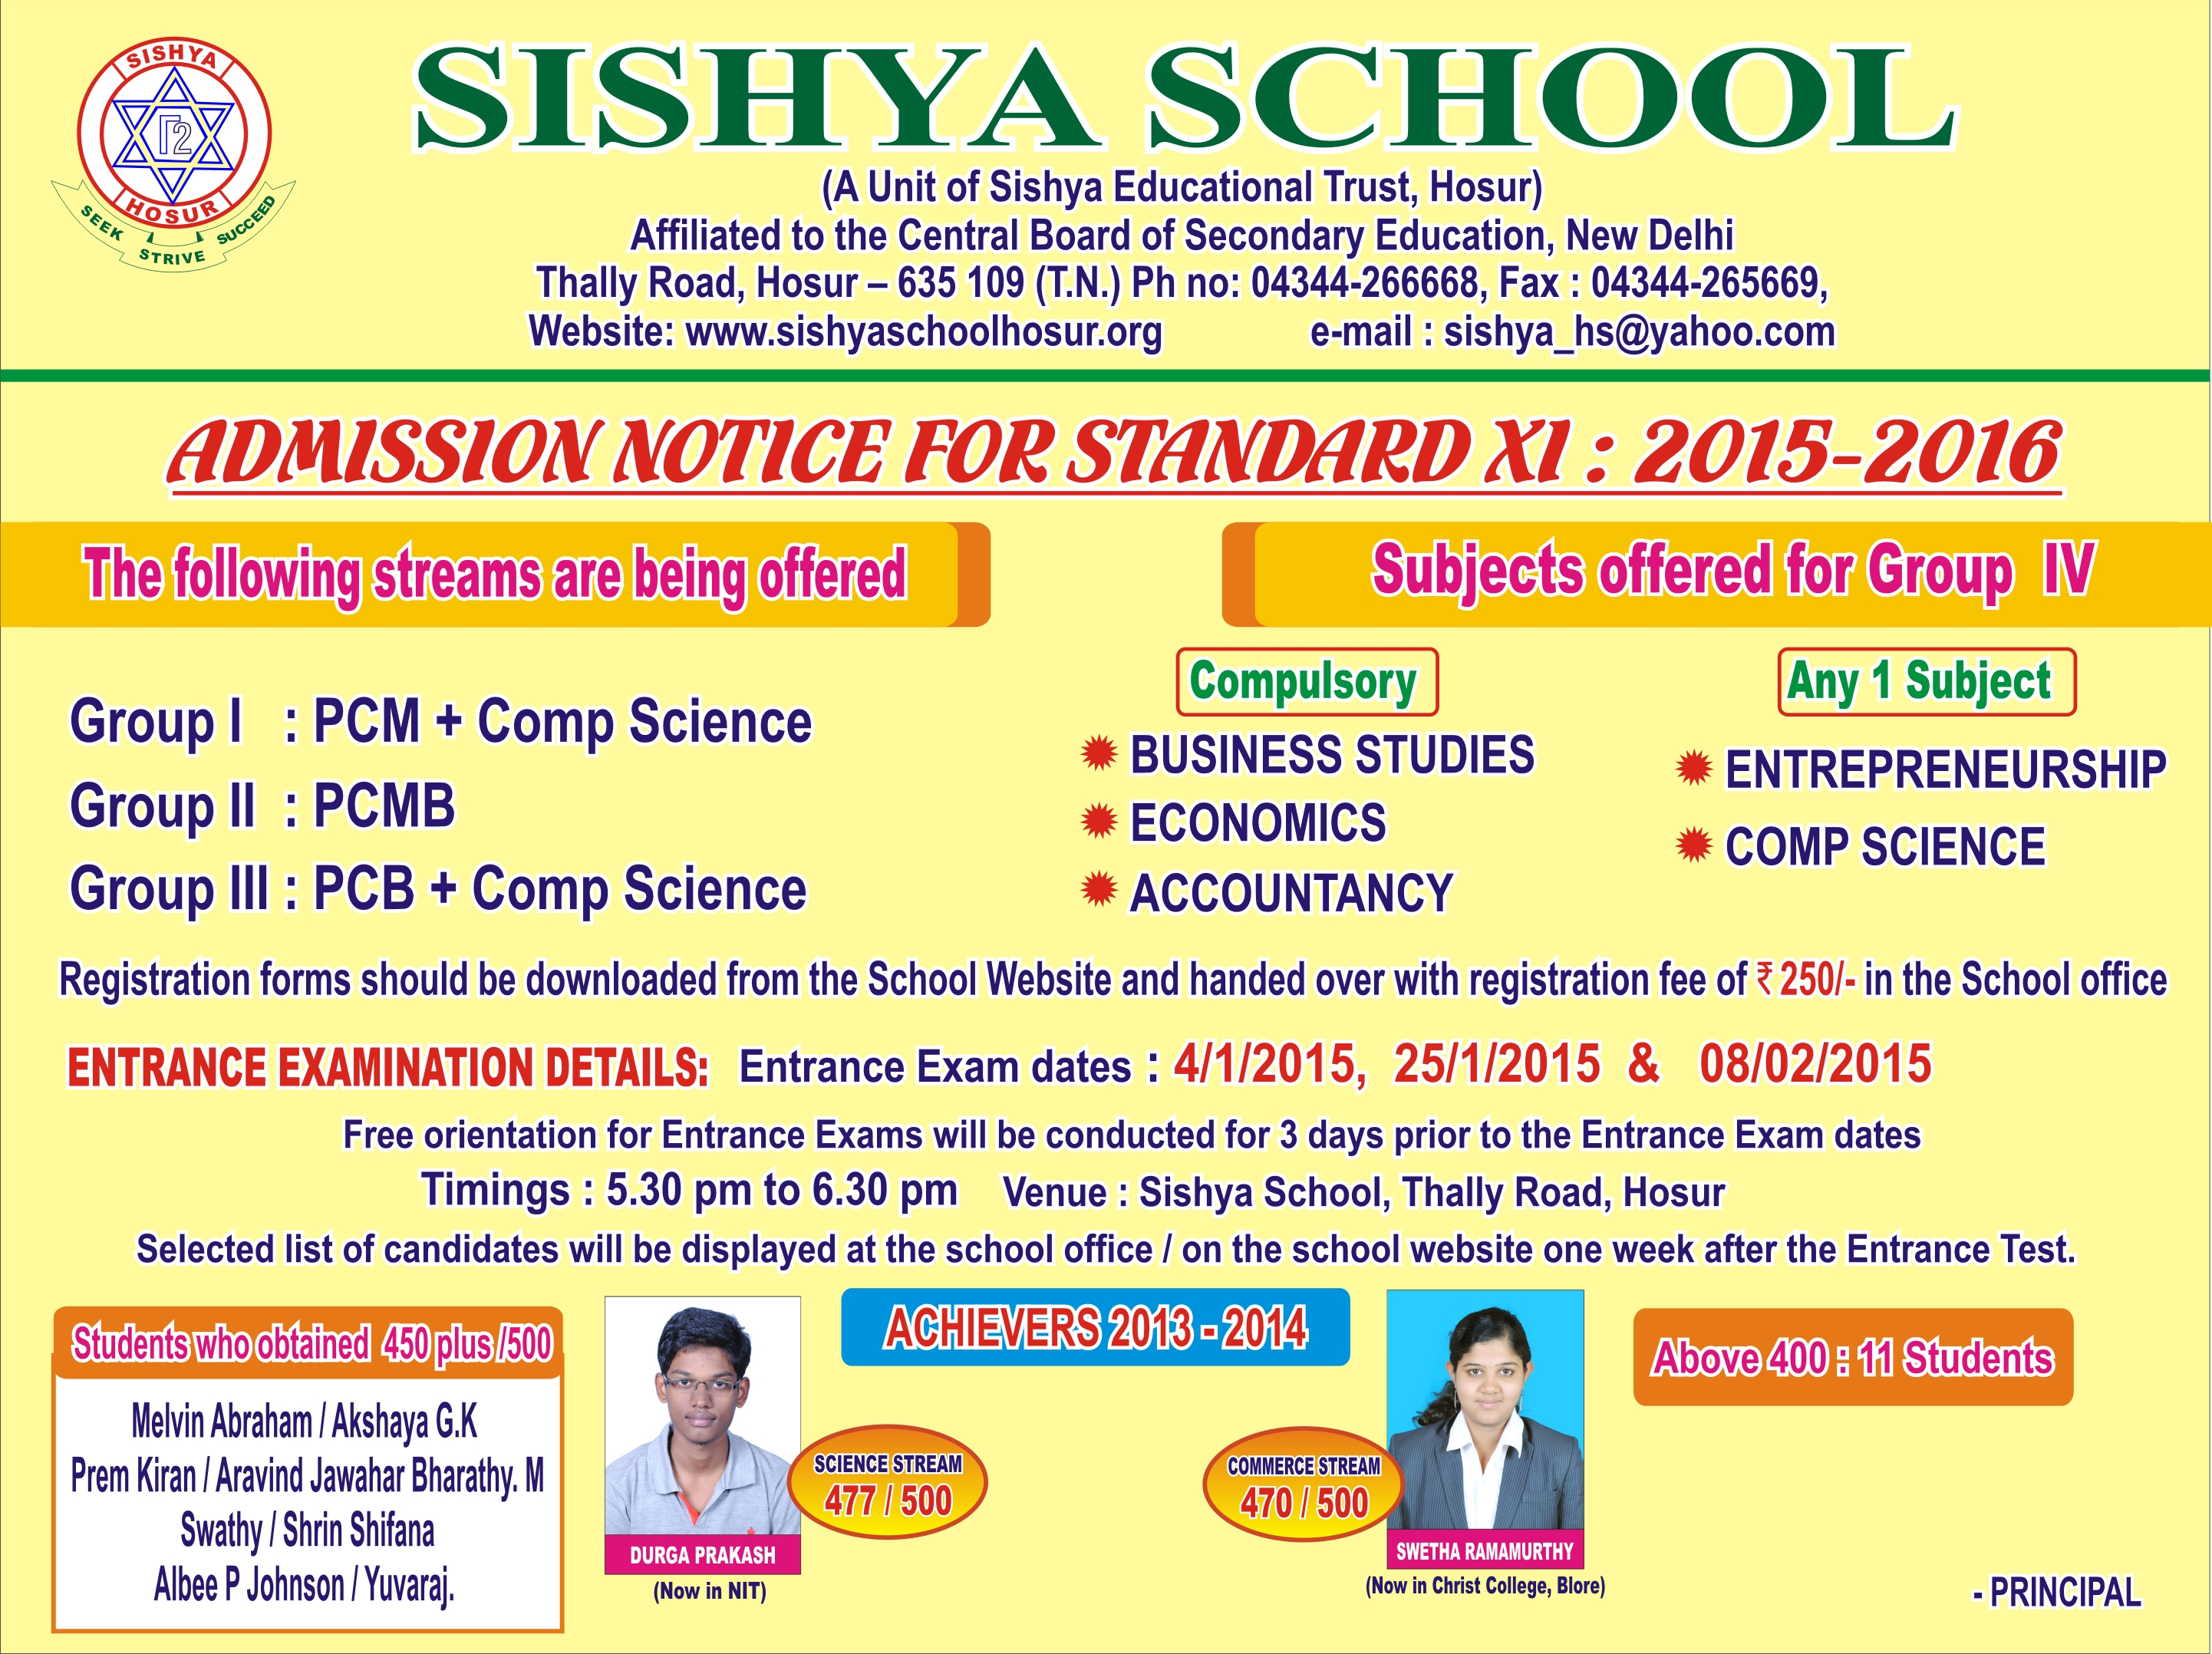 Welcome to sishya school hosur admission notice class xi 2015 16 malvernweather Gallery